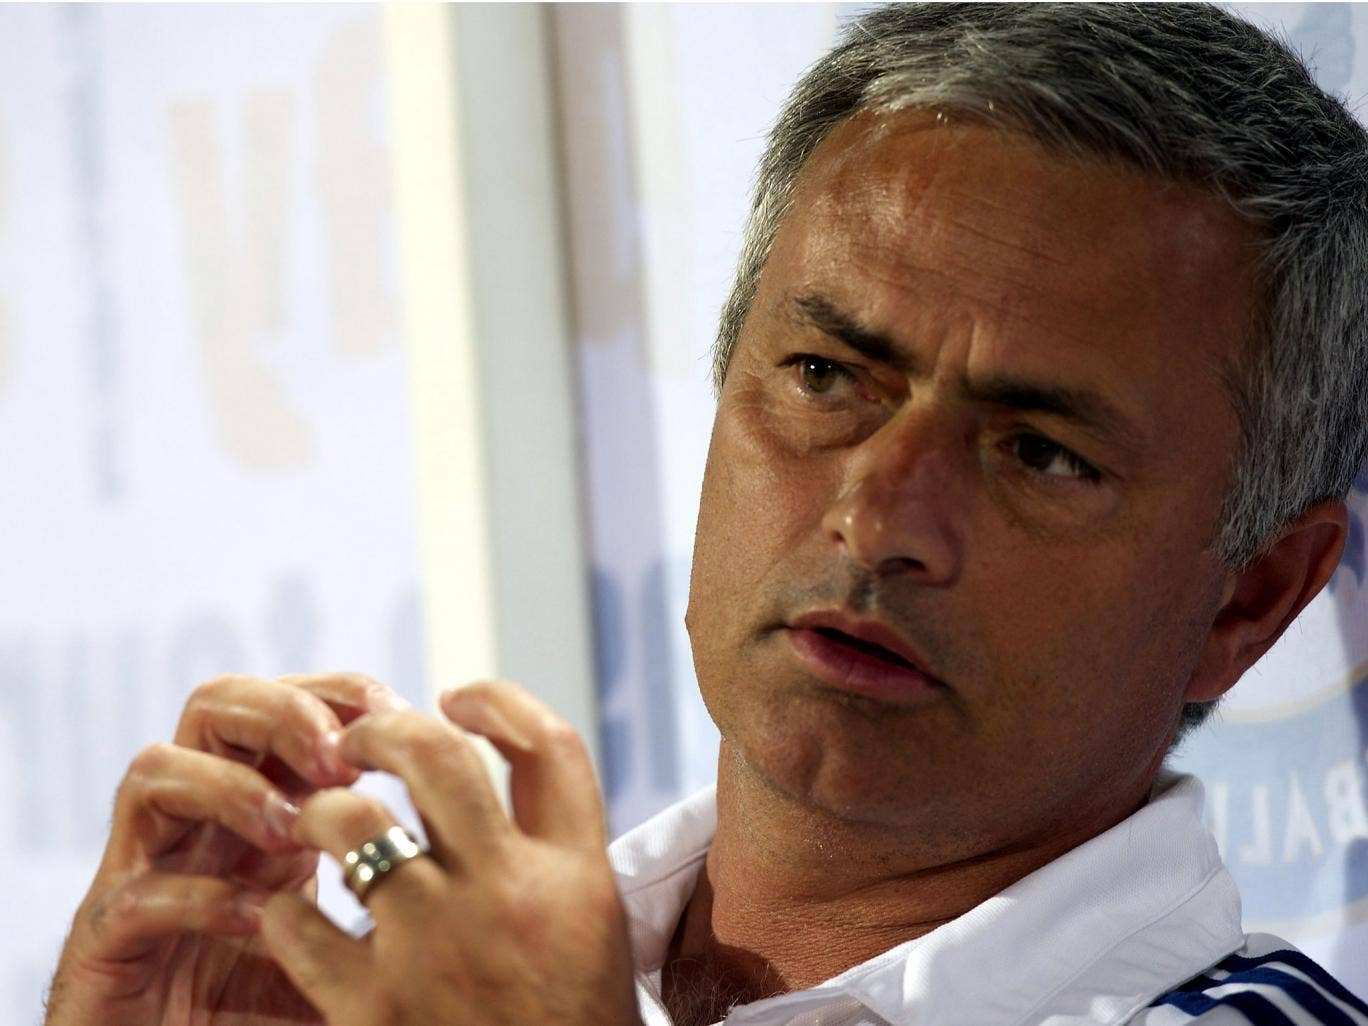 Jose Mourinho says that Manchester United, who his Chelsea side face tonight, have a 'fantastic squad'